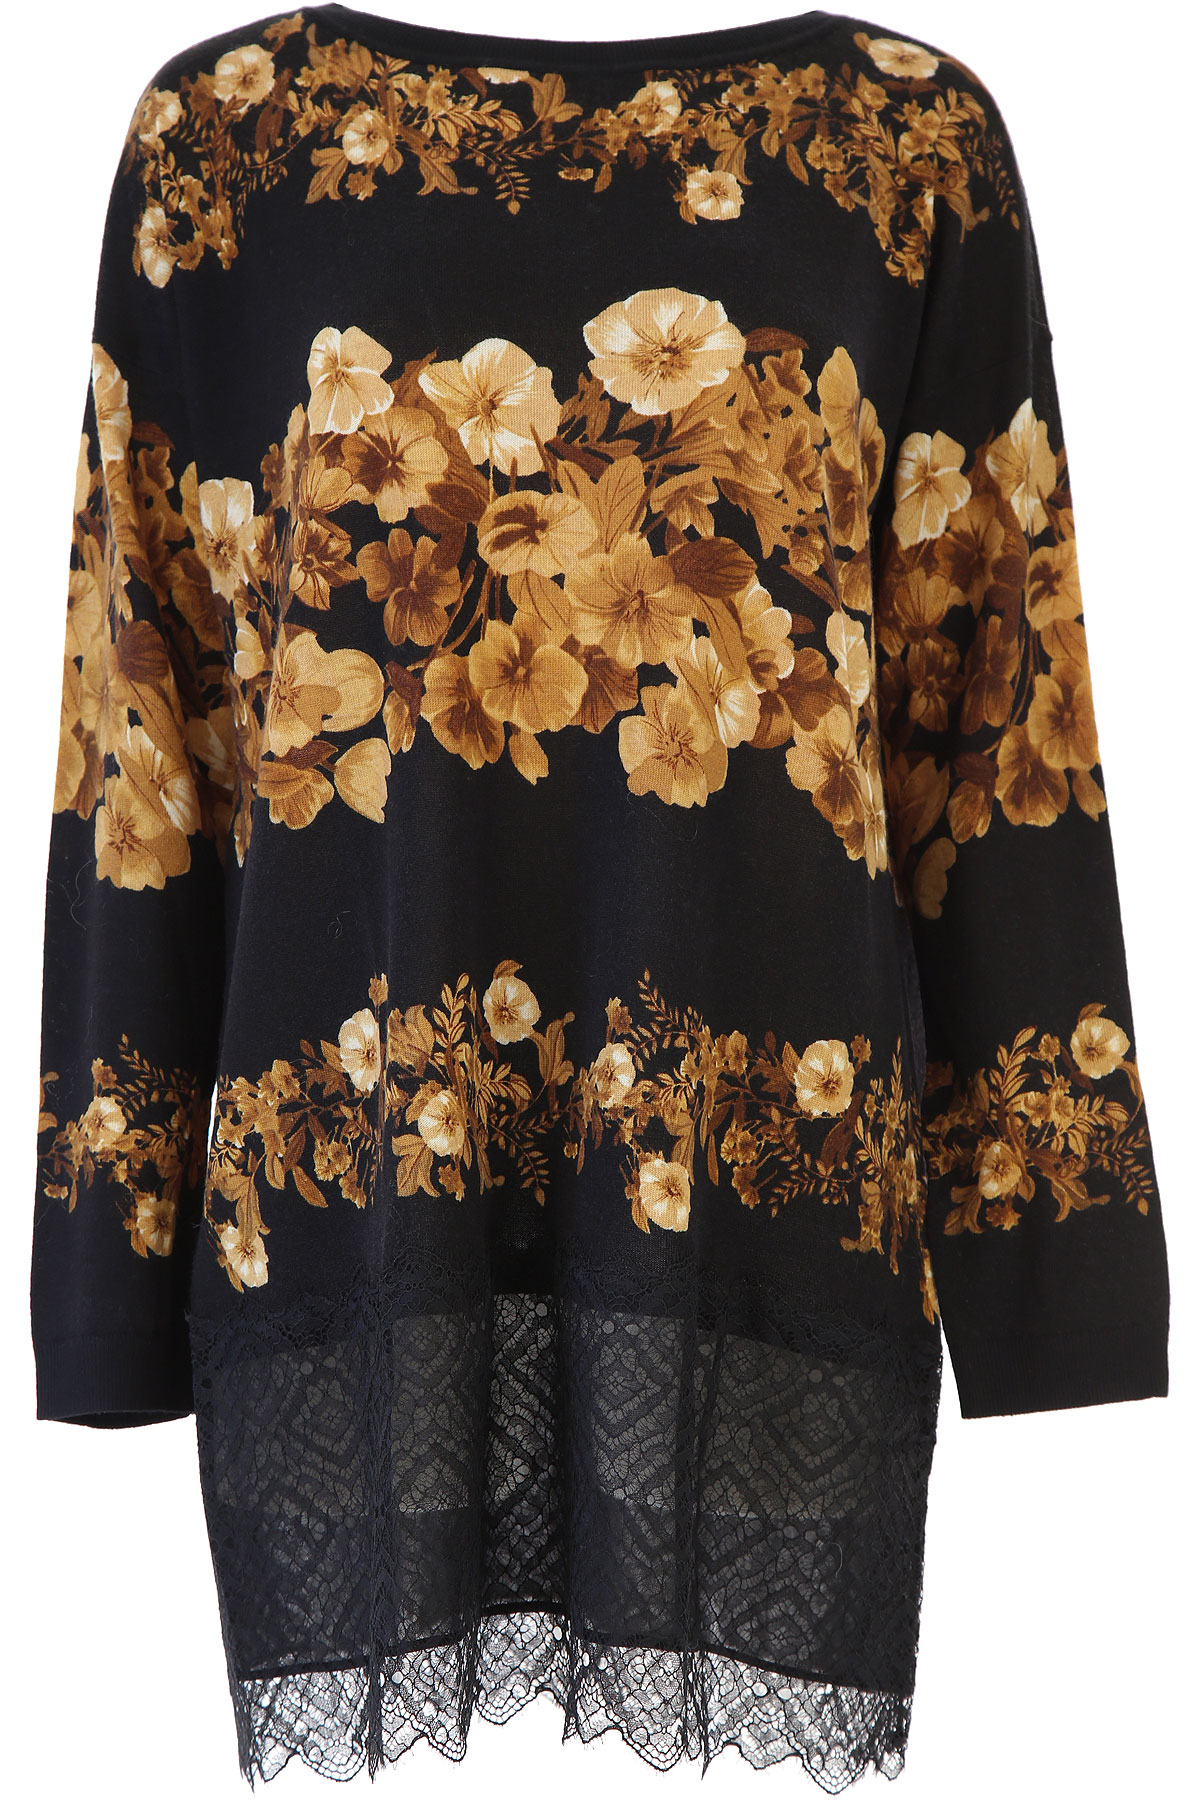 Twin Set by Simona Barbieri Dress for Women, Evening Cocktail Party On Sale, Black, Wool, 2019, 10